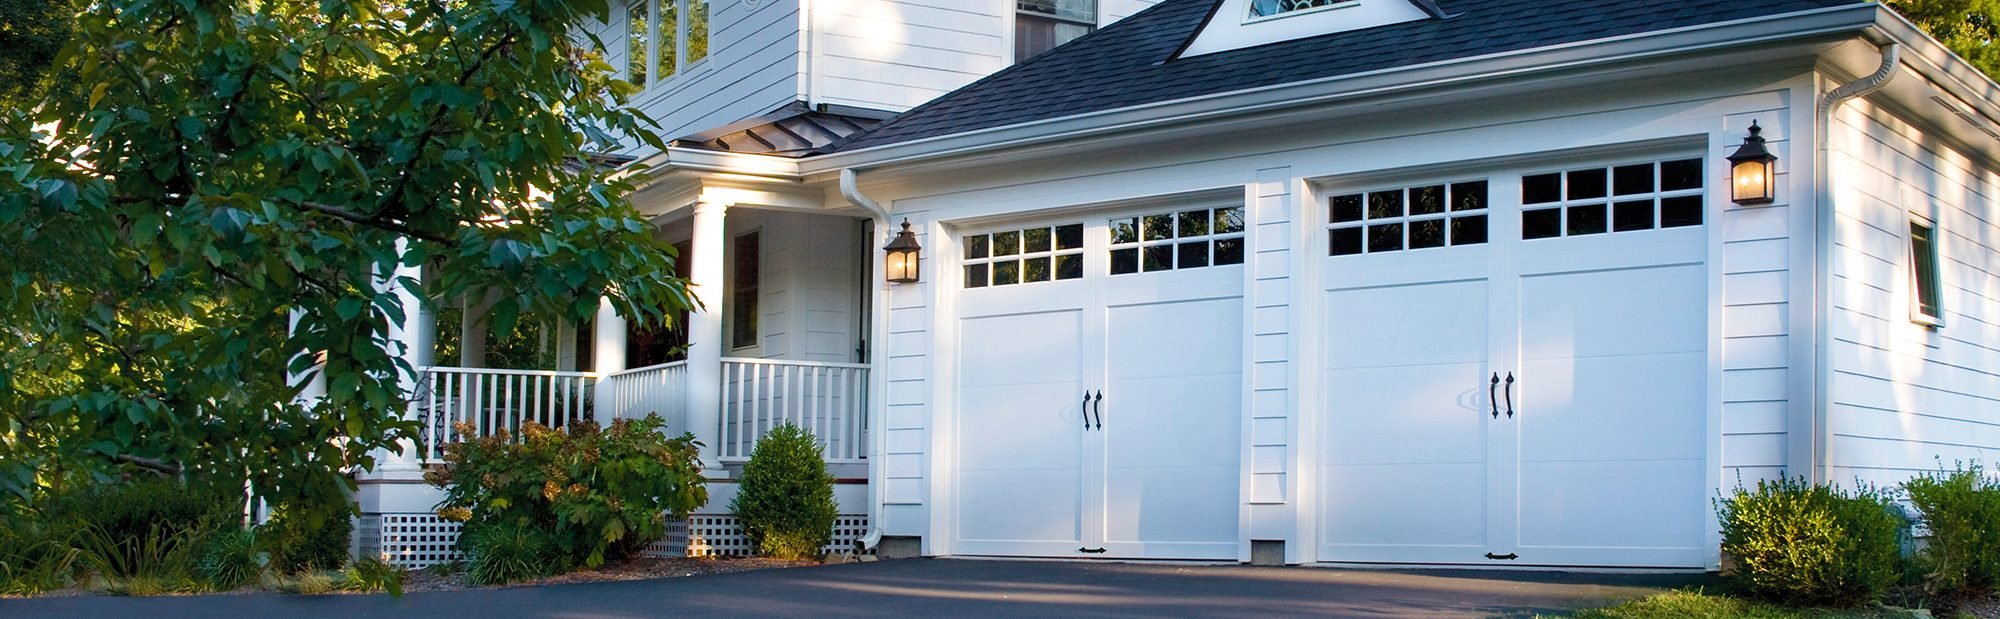 DistribuDoors | Garage Door Service | Greater Seattle Area